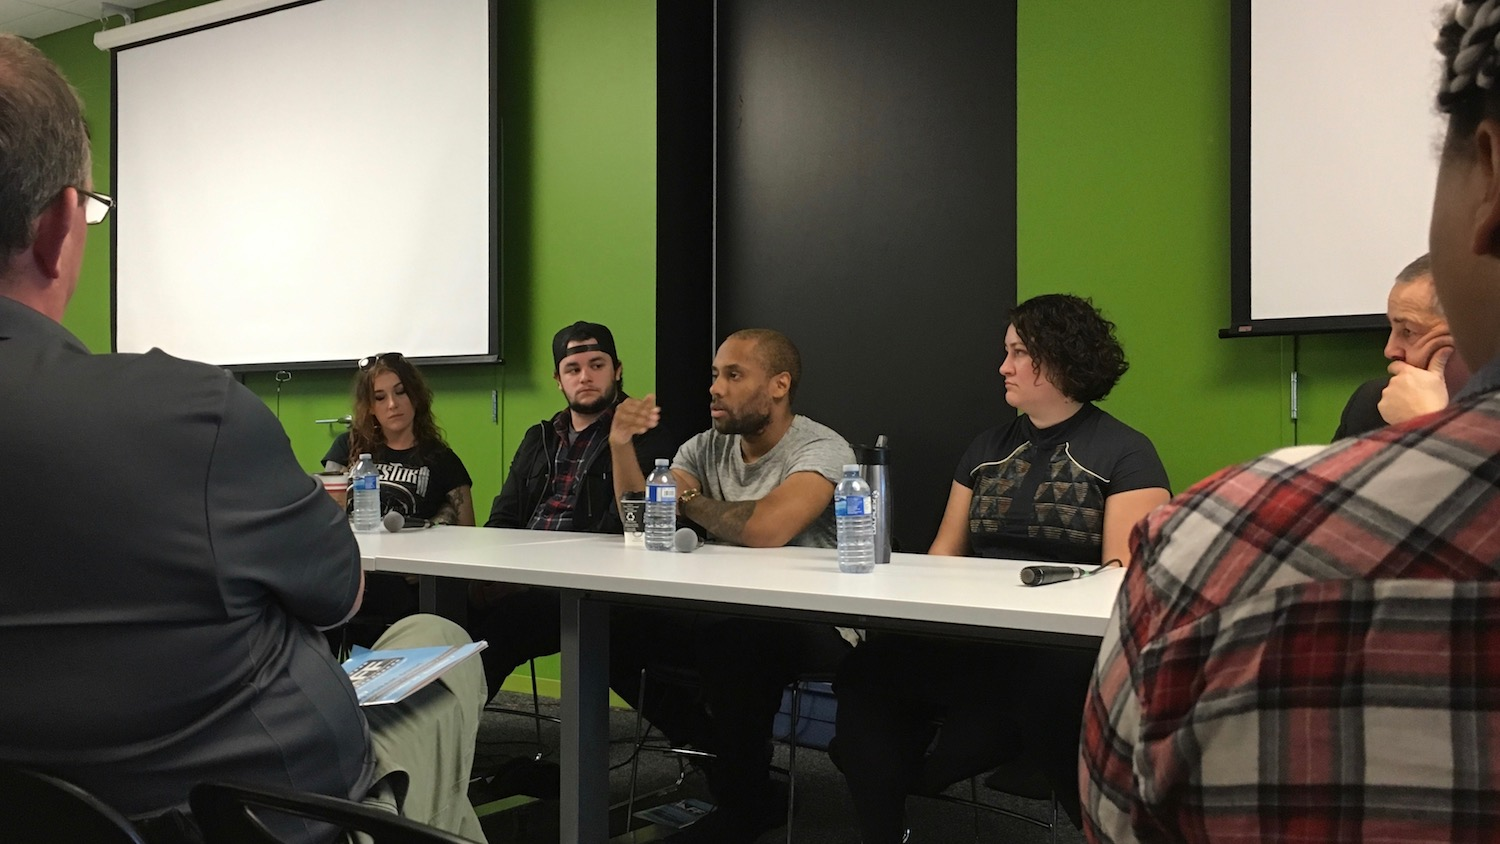 Panelist, Tyler Simmonds discusses the short film he made about his own depression.